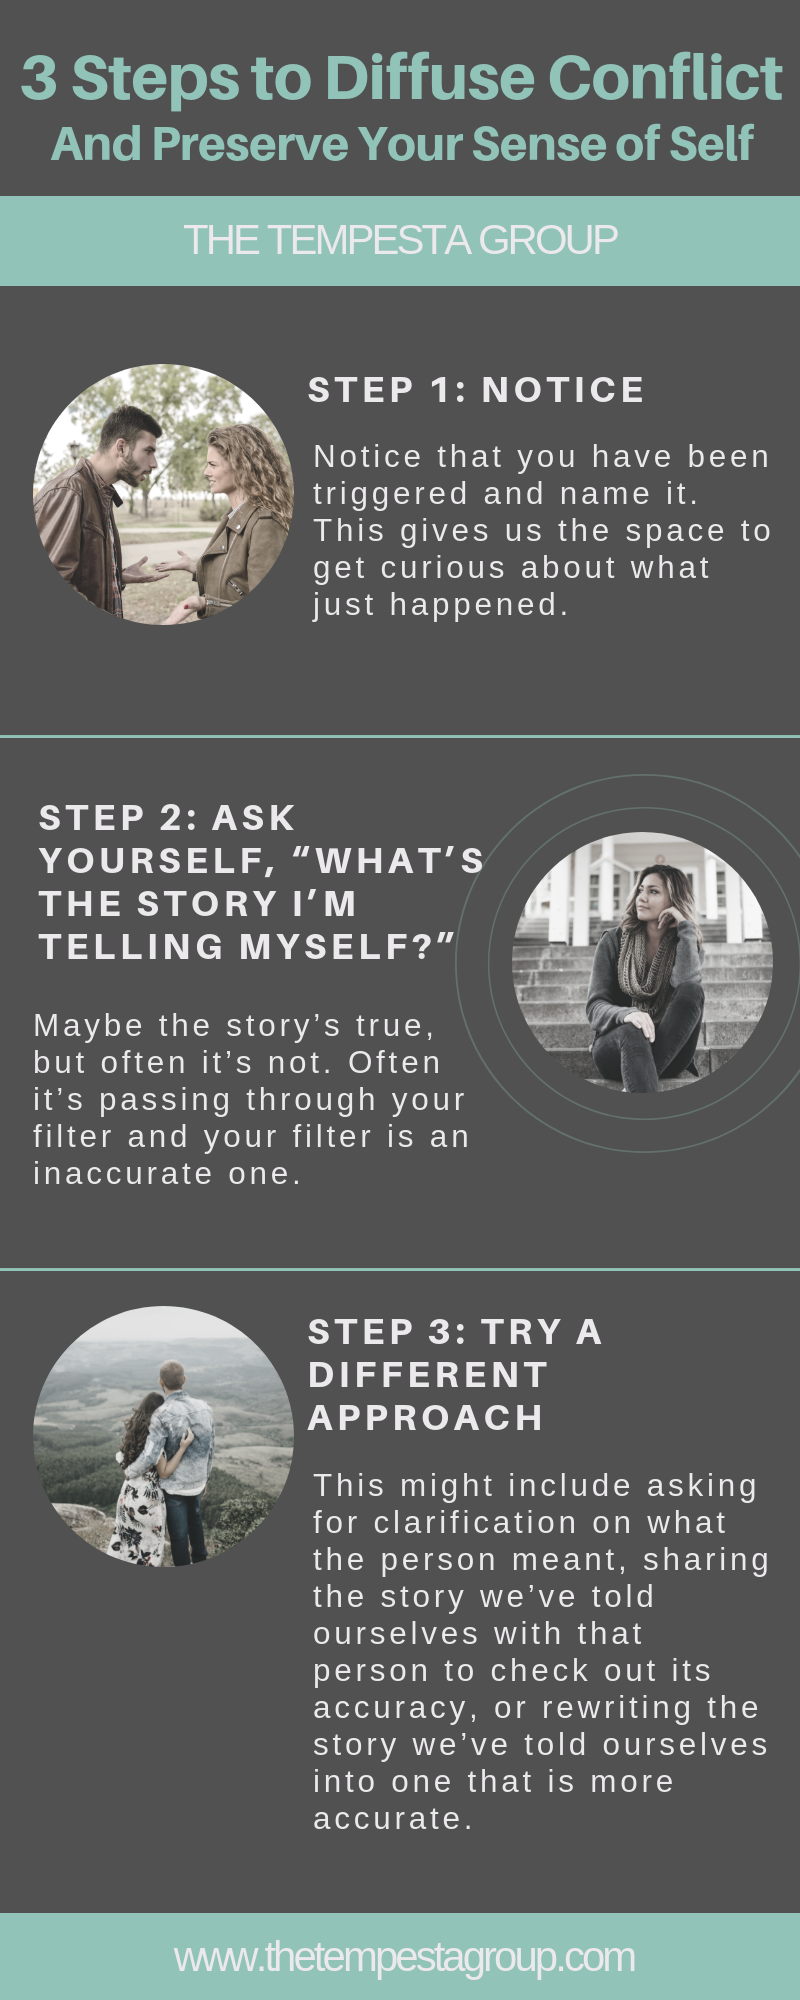 3 Steps to Diffuse Conflict Infographic